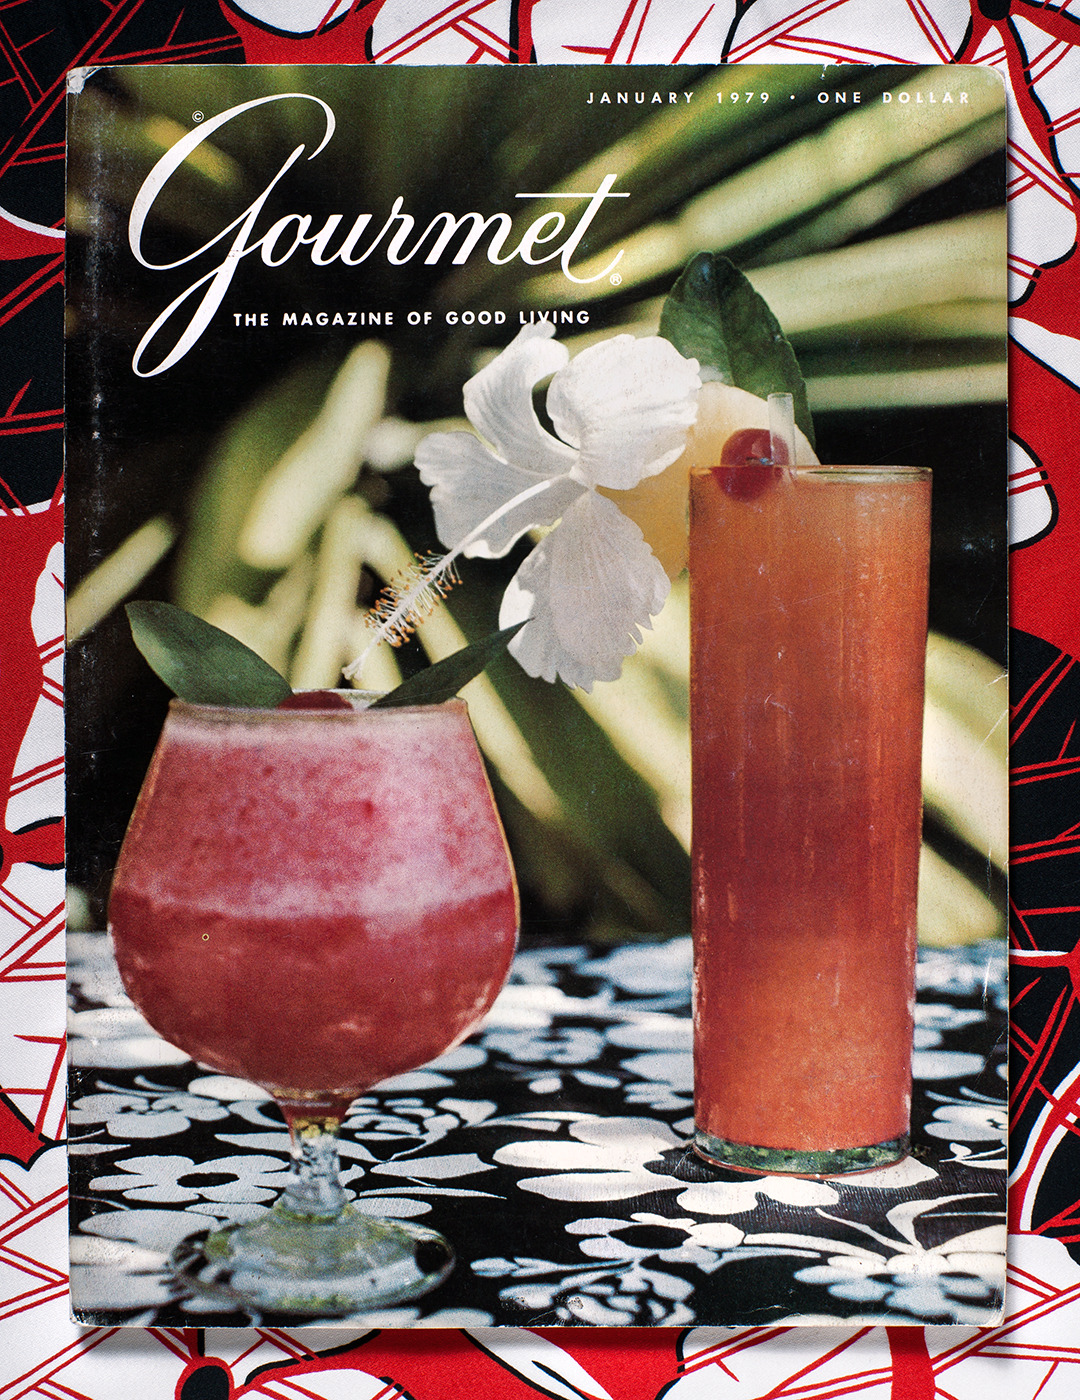 Gourmet: January 1979